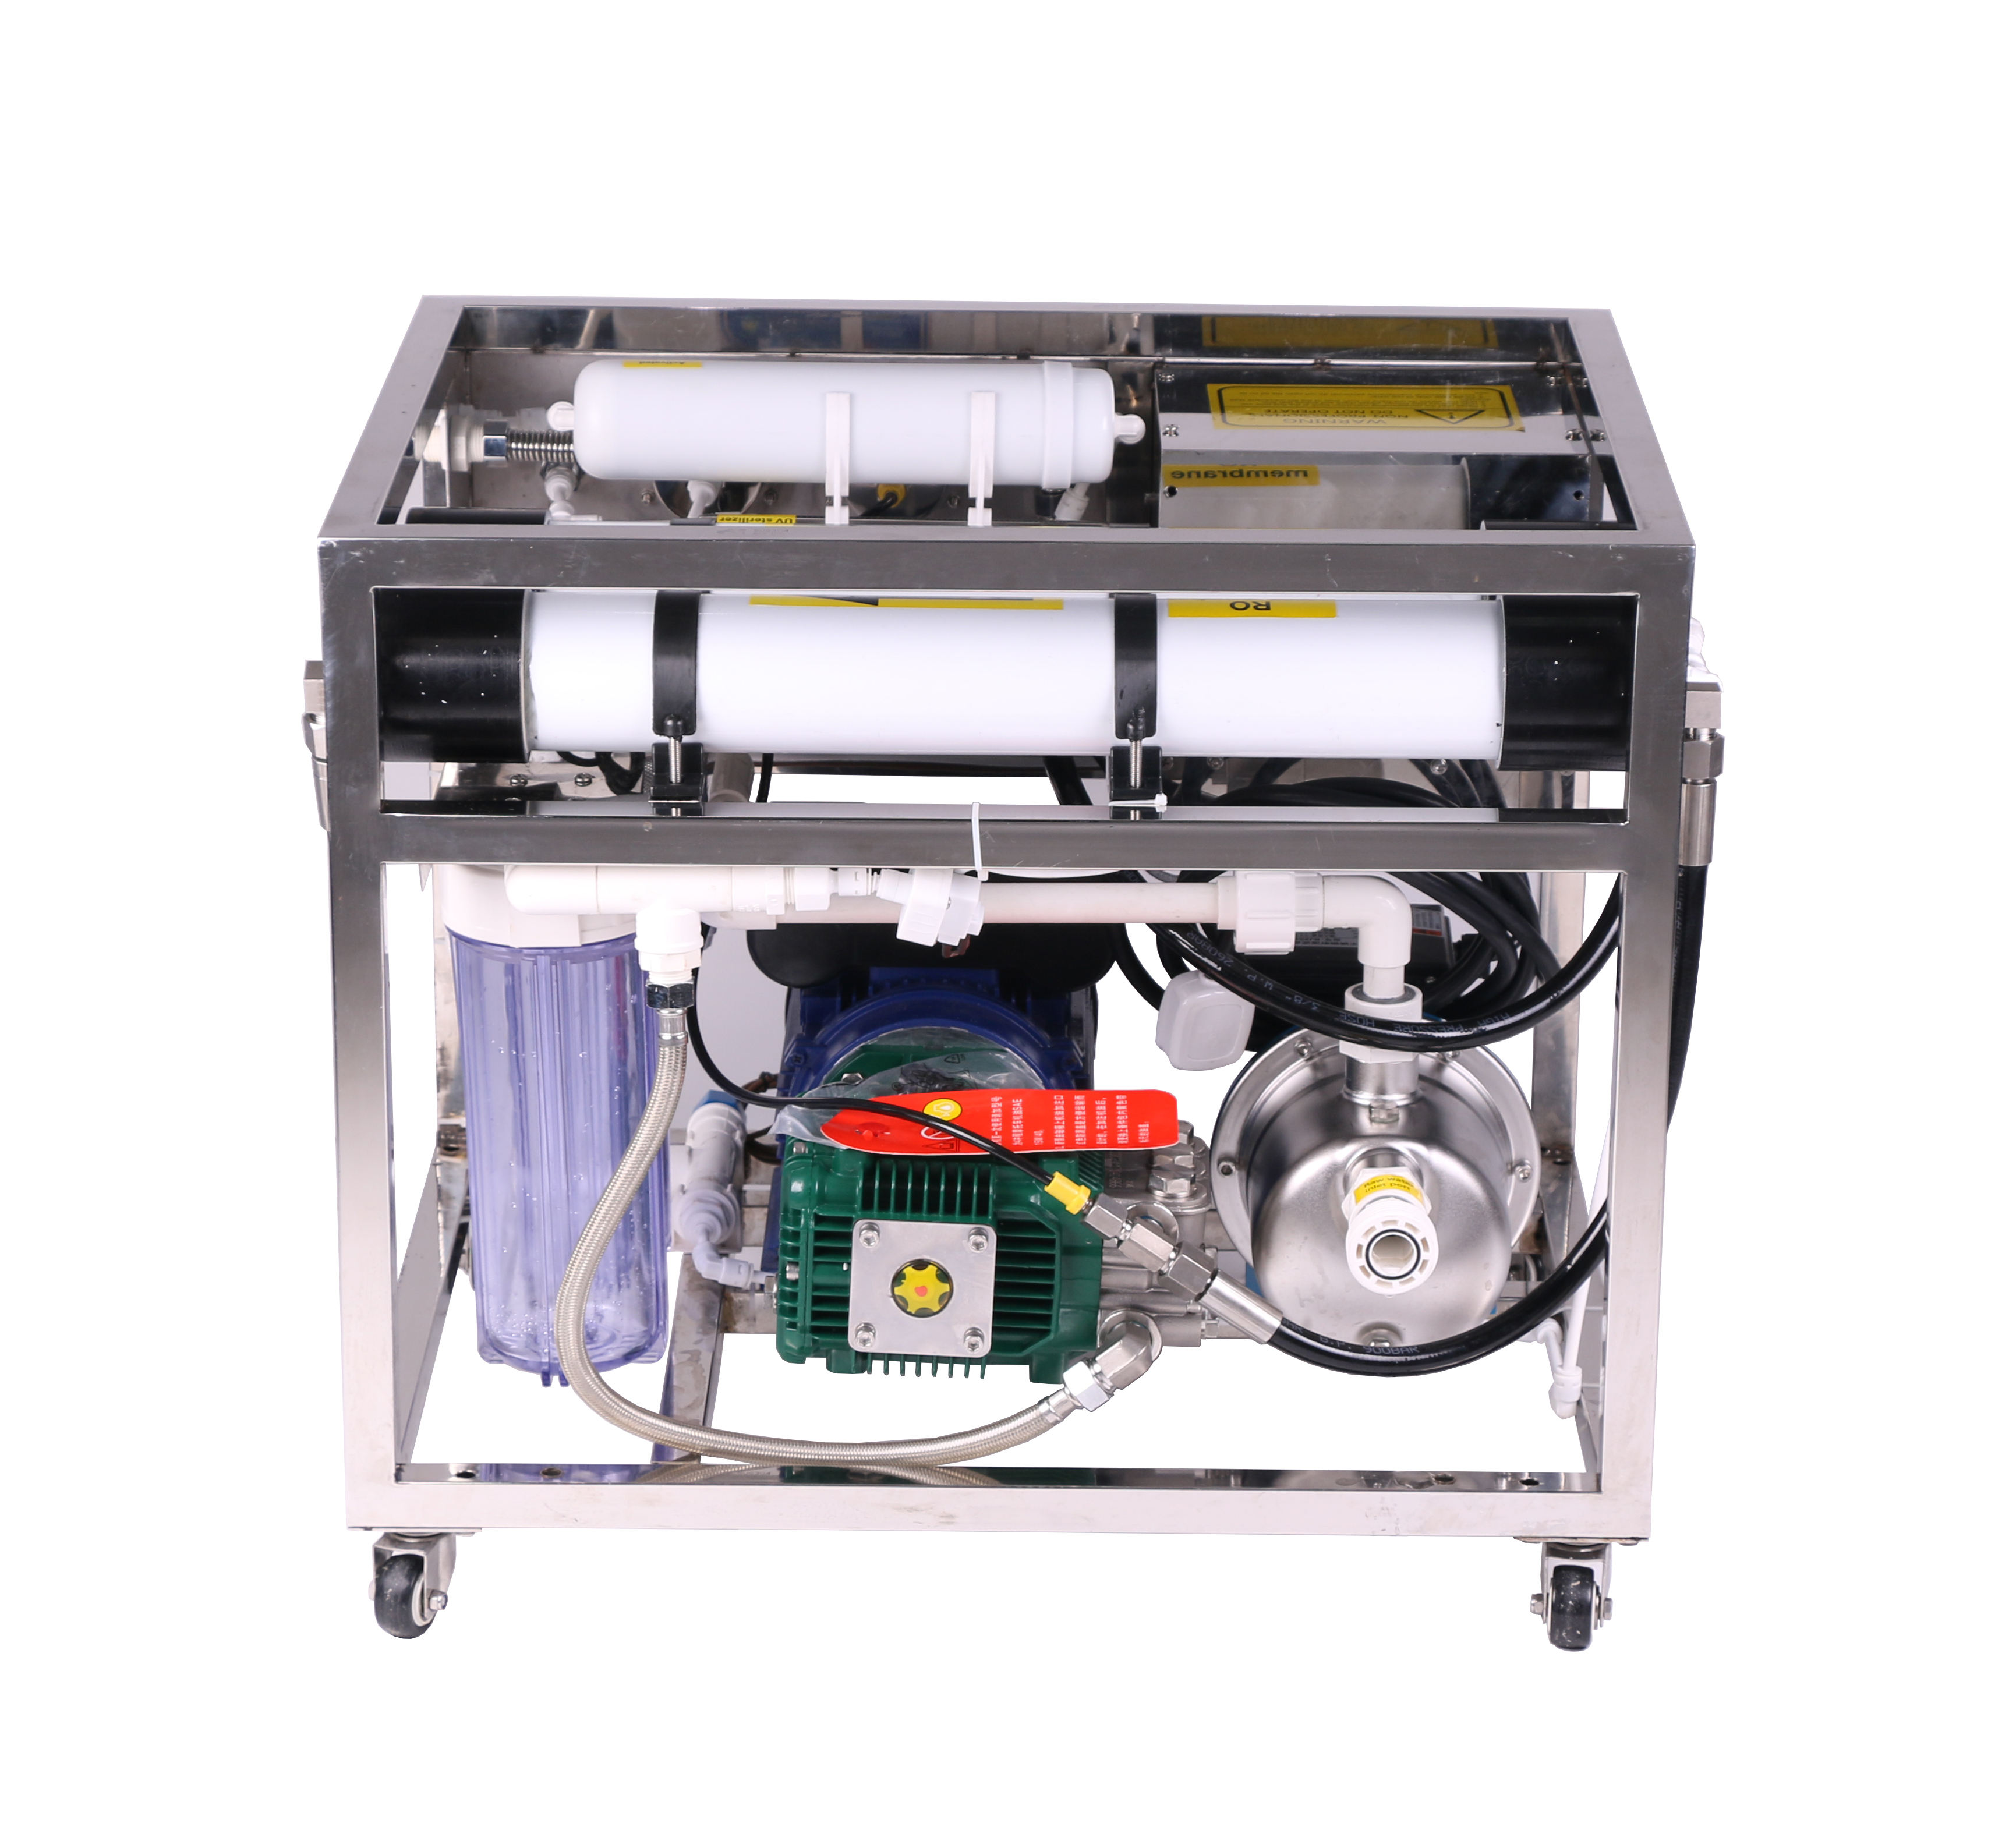 RO-1000LPH High desalination rate ozone generator water purifier machine desalination equipment